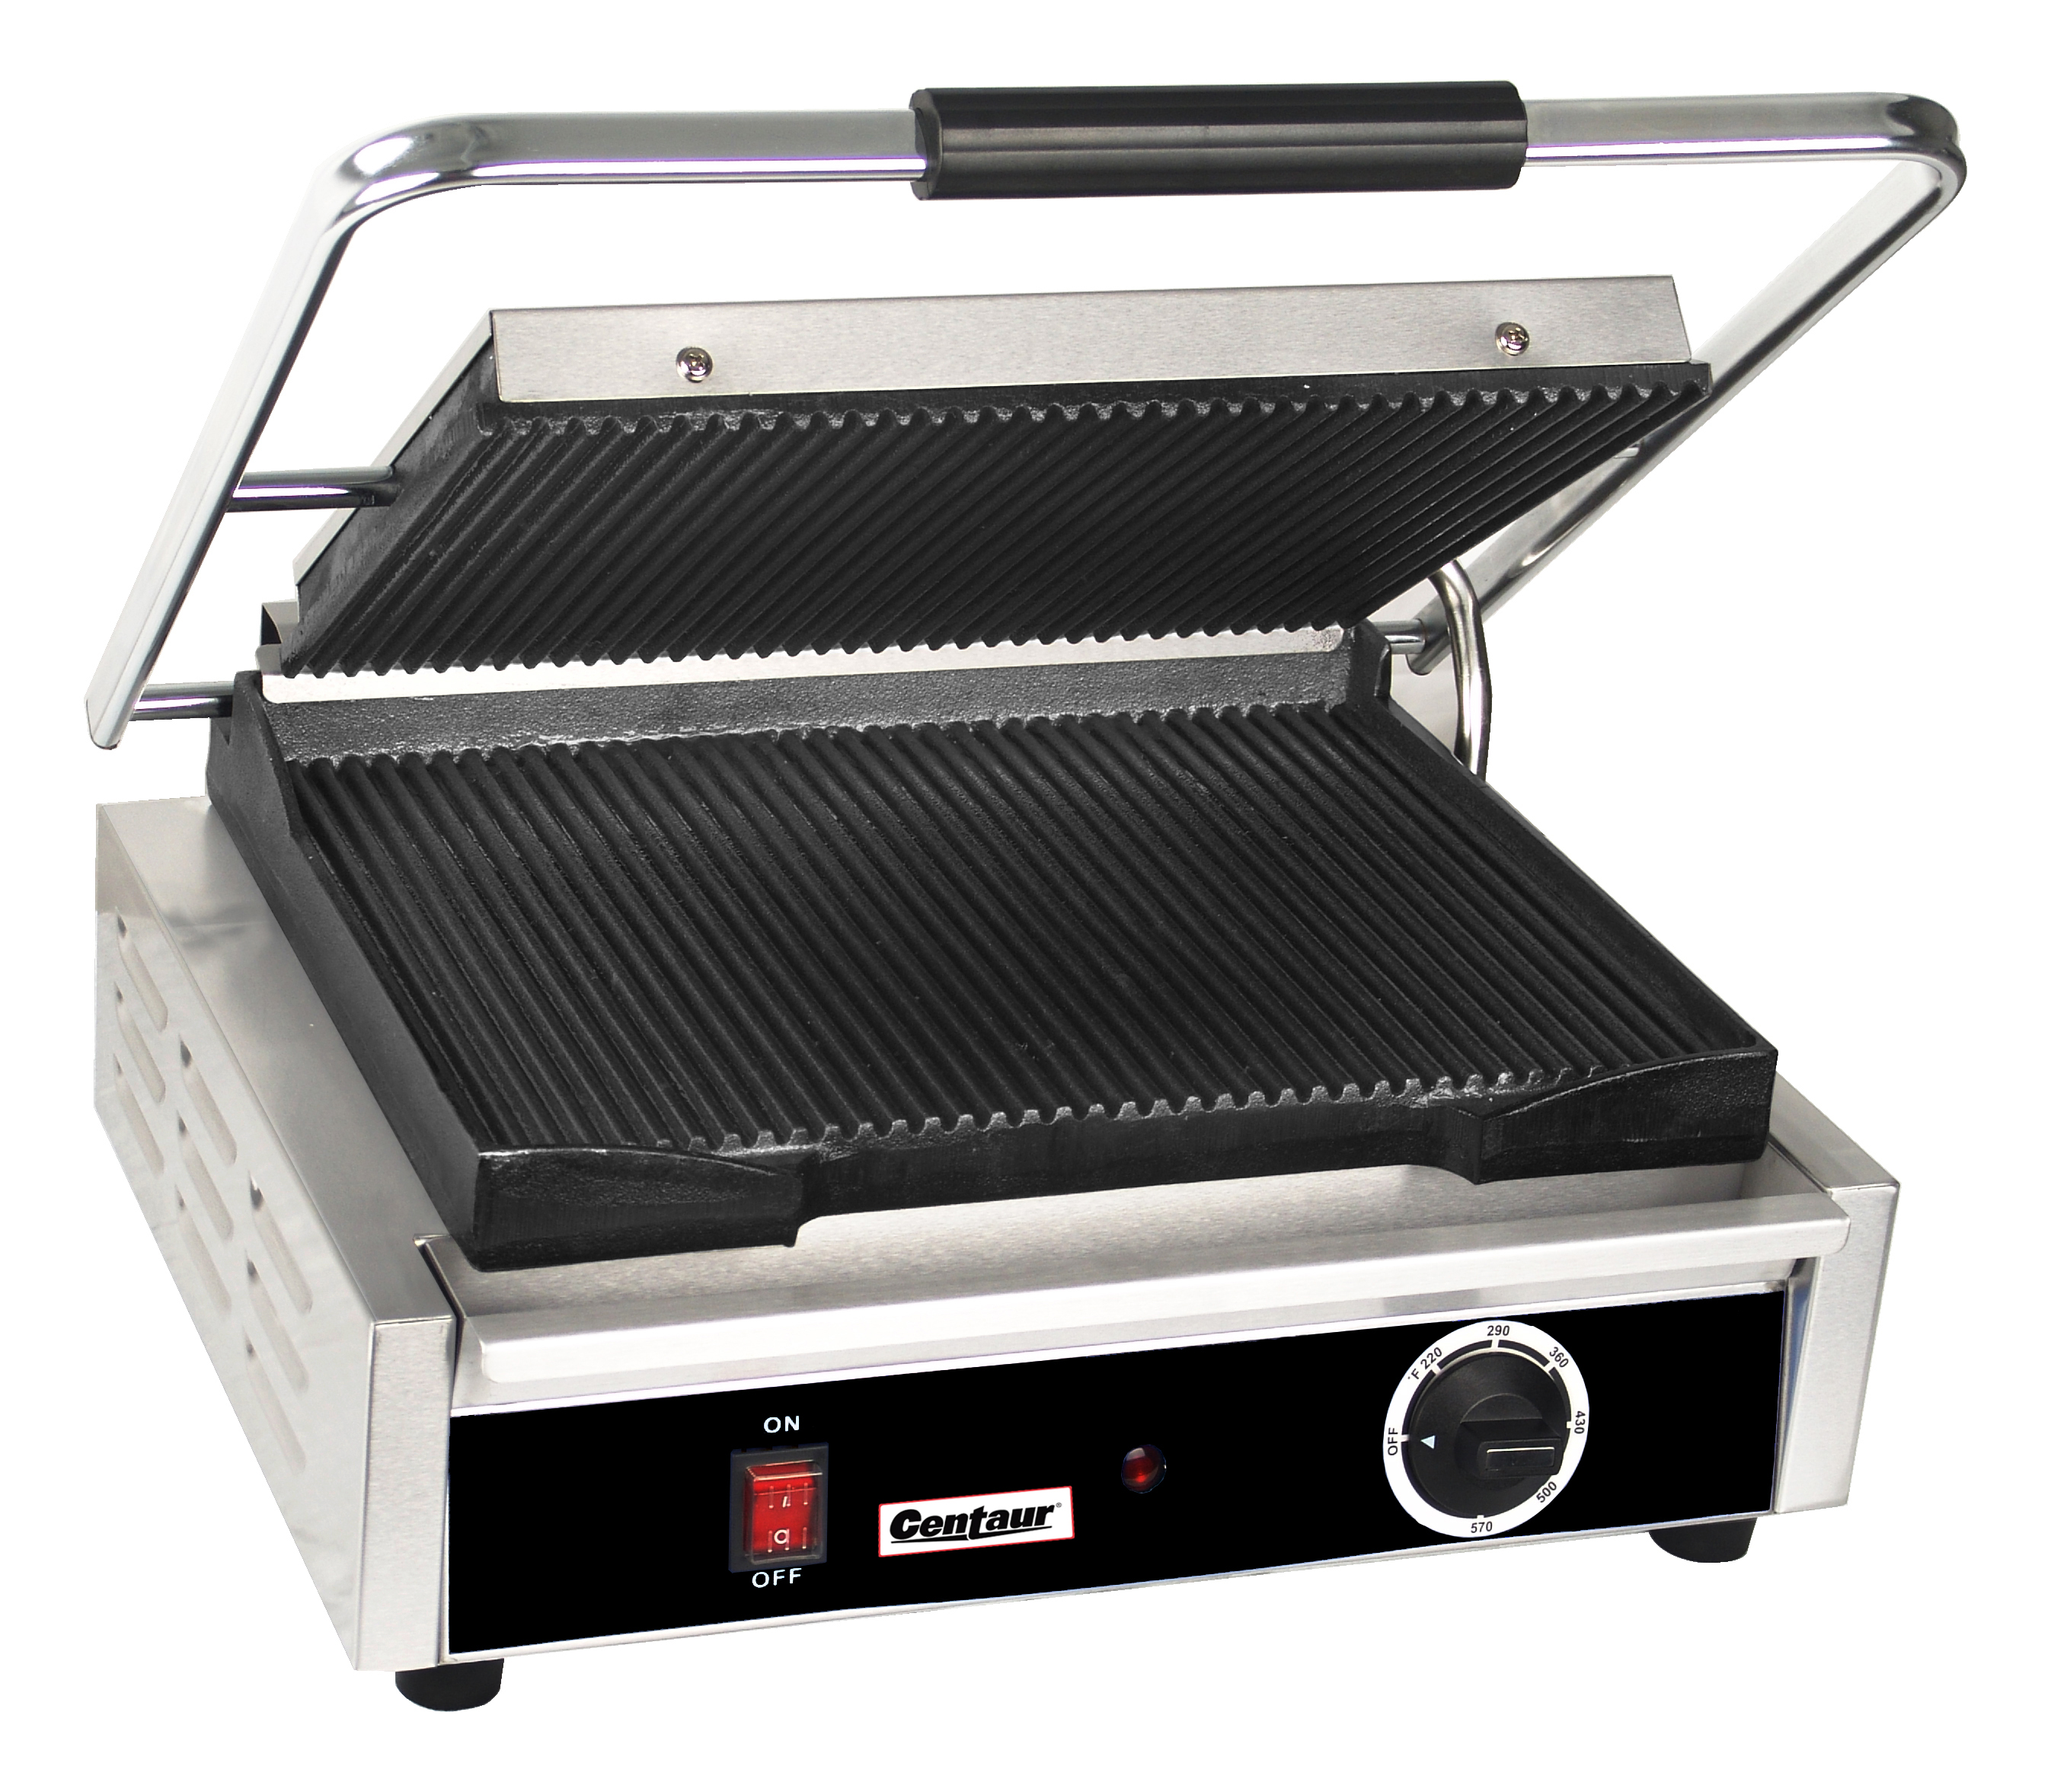 centaur 10x14 panini grill centaur food services. Black Bedroom Furniture Sets. Home Design Ideas